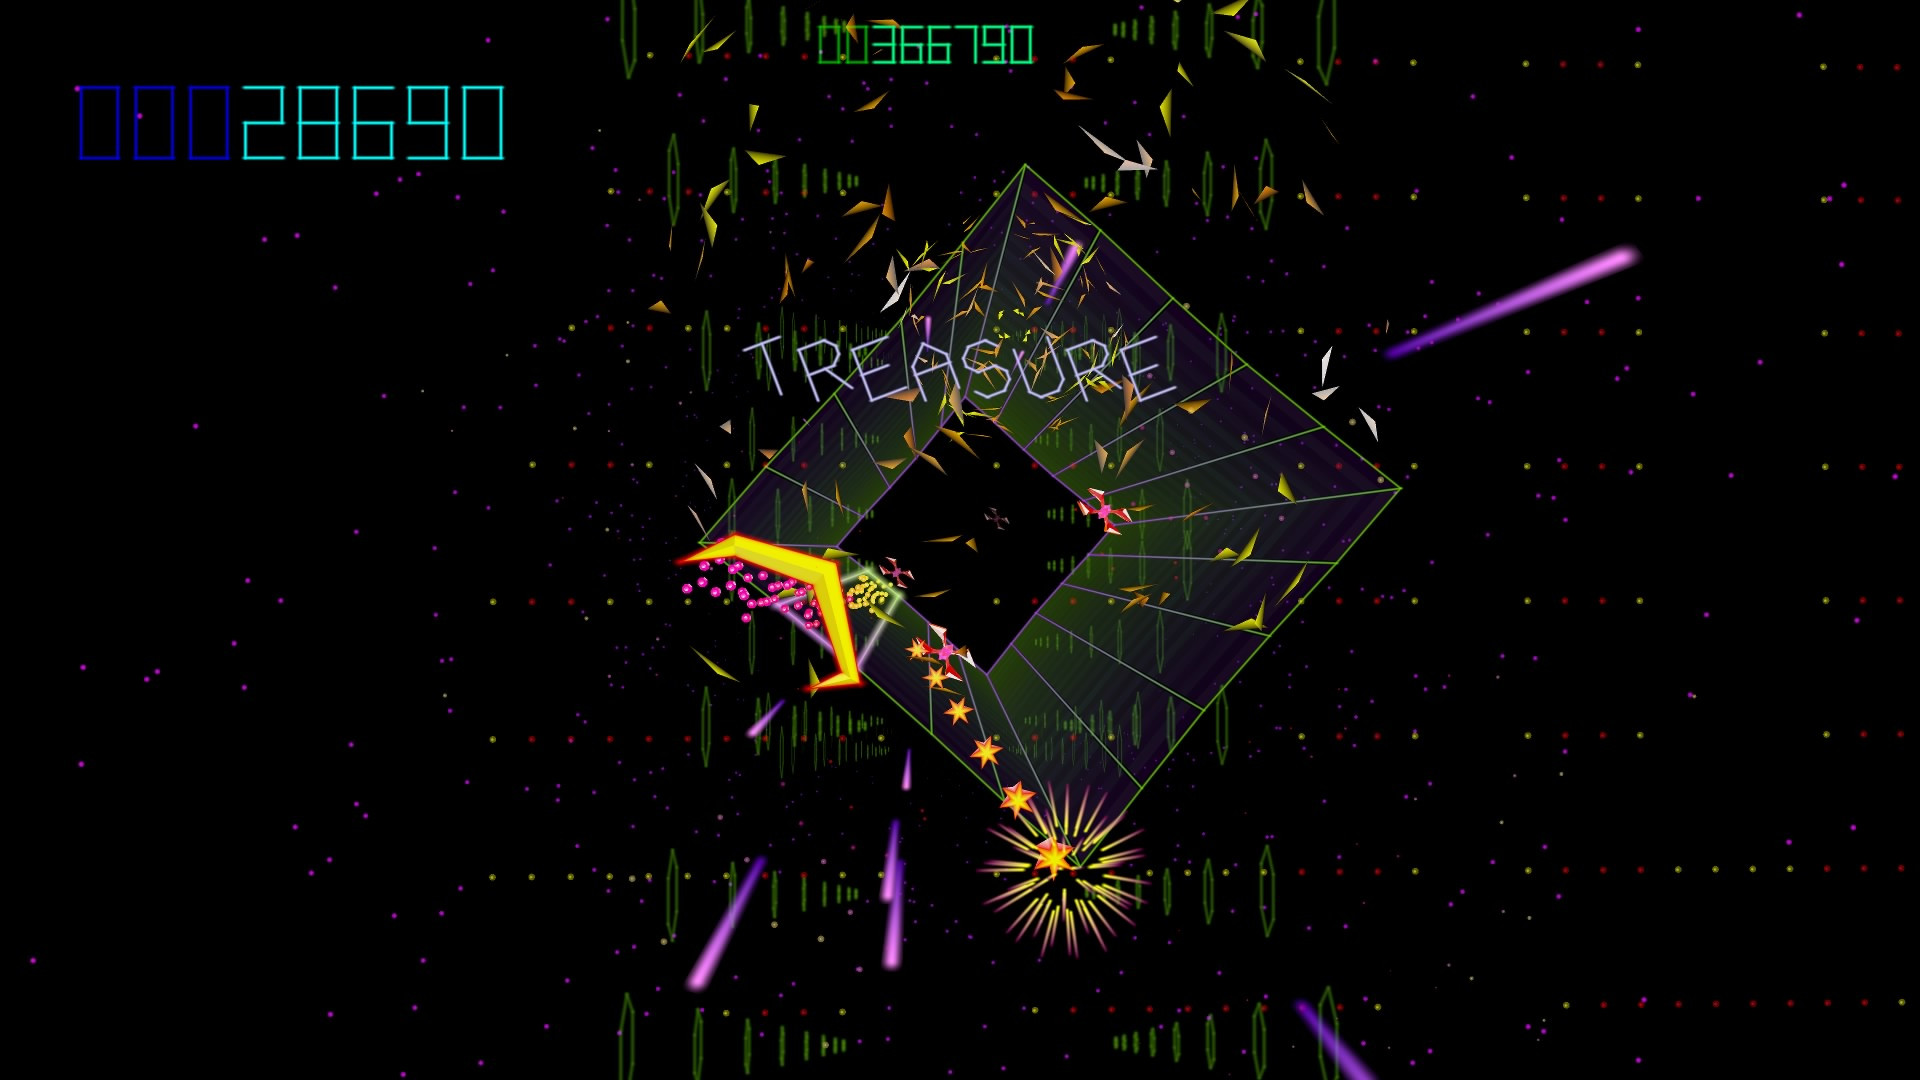 Tempest4000_PS4_Review_5.jpg